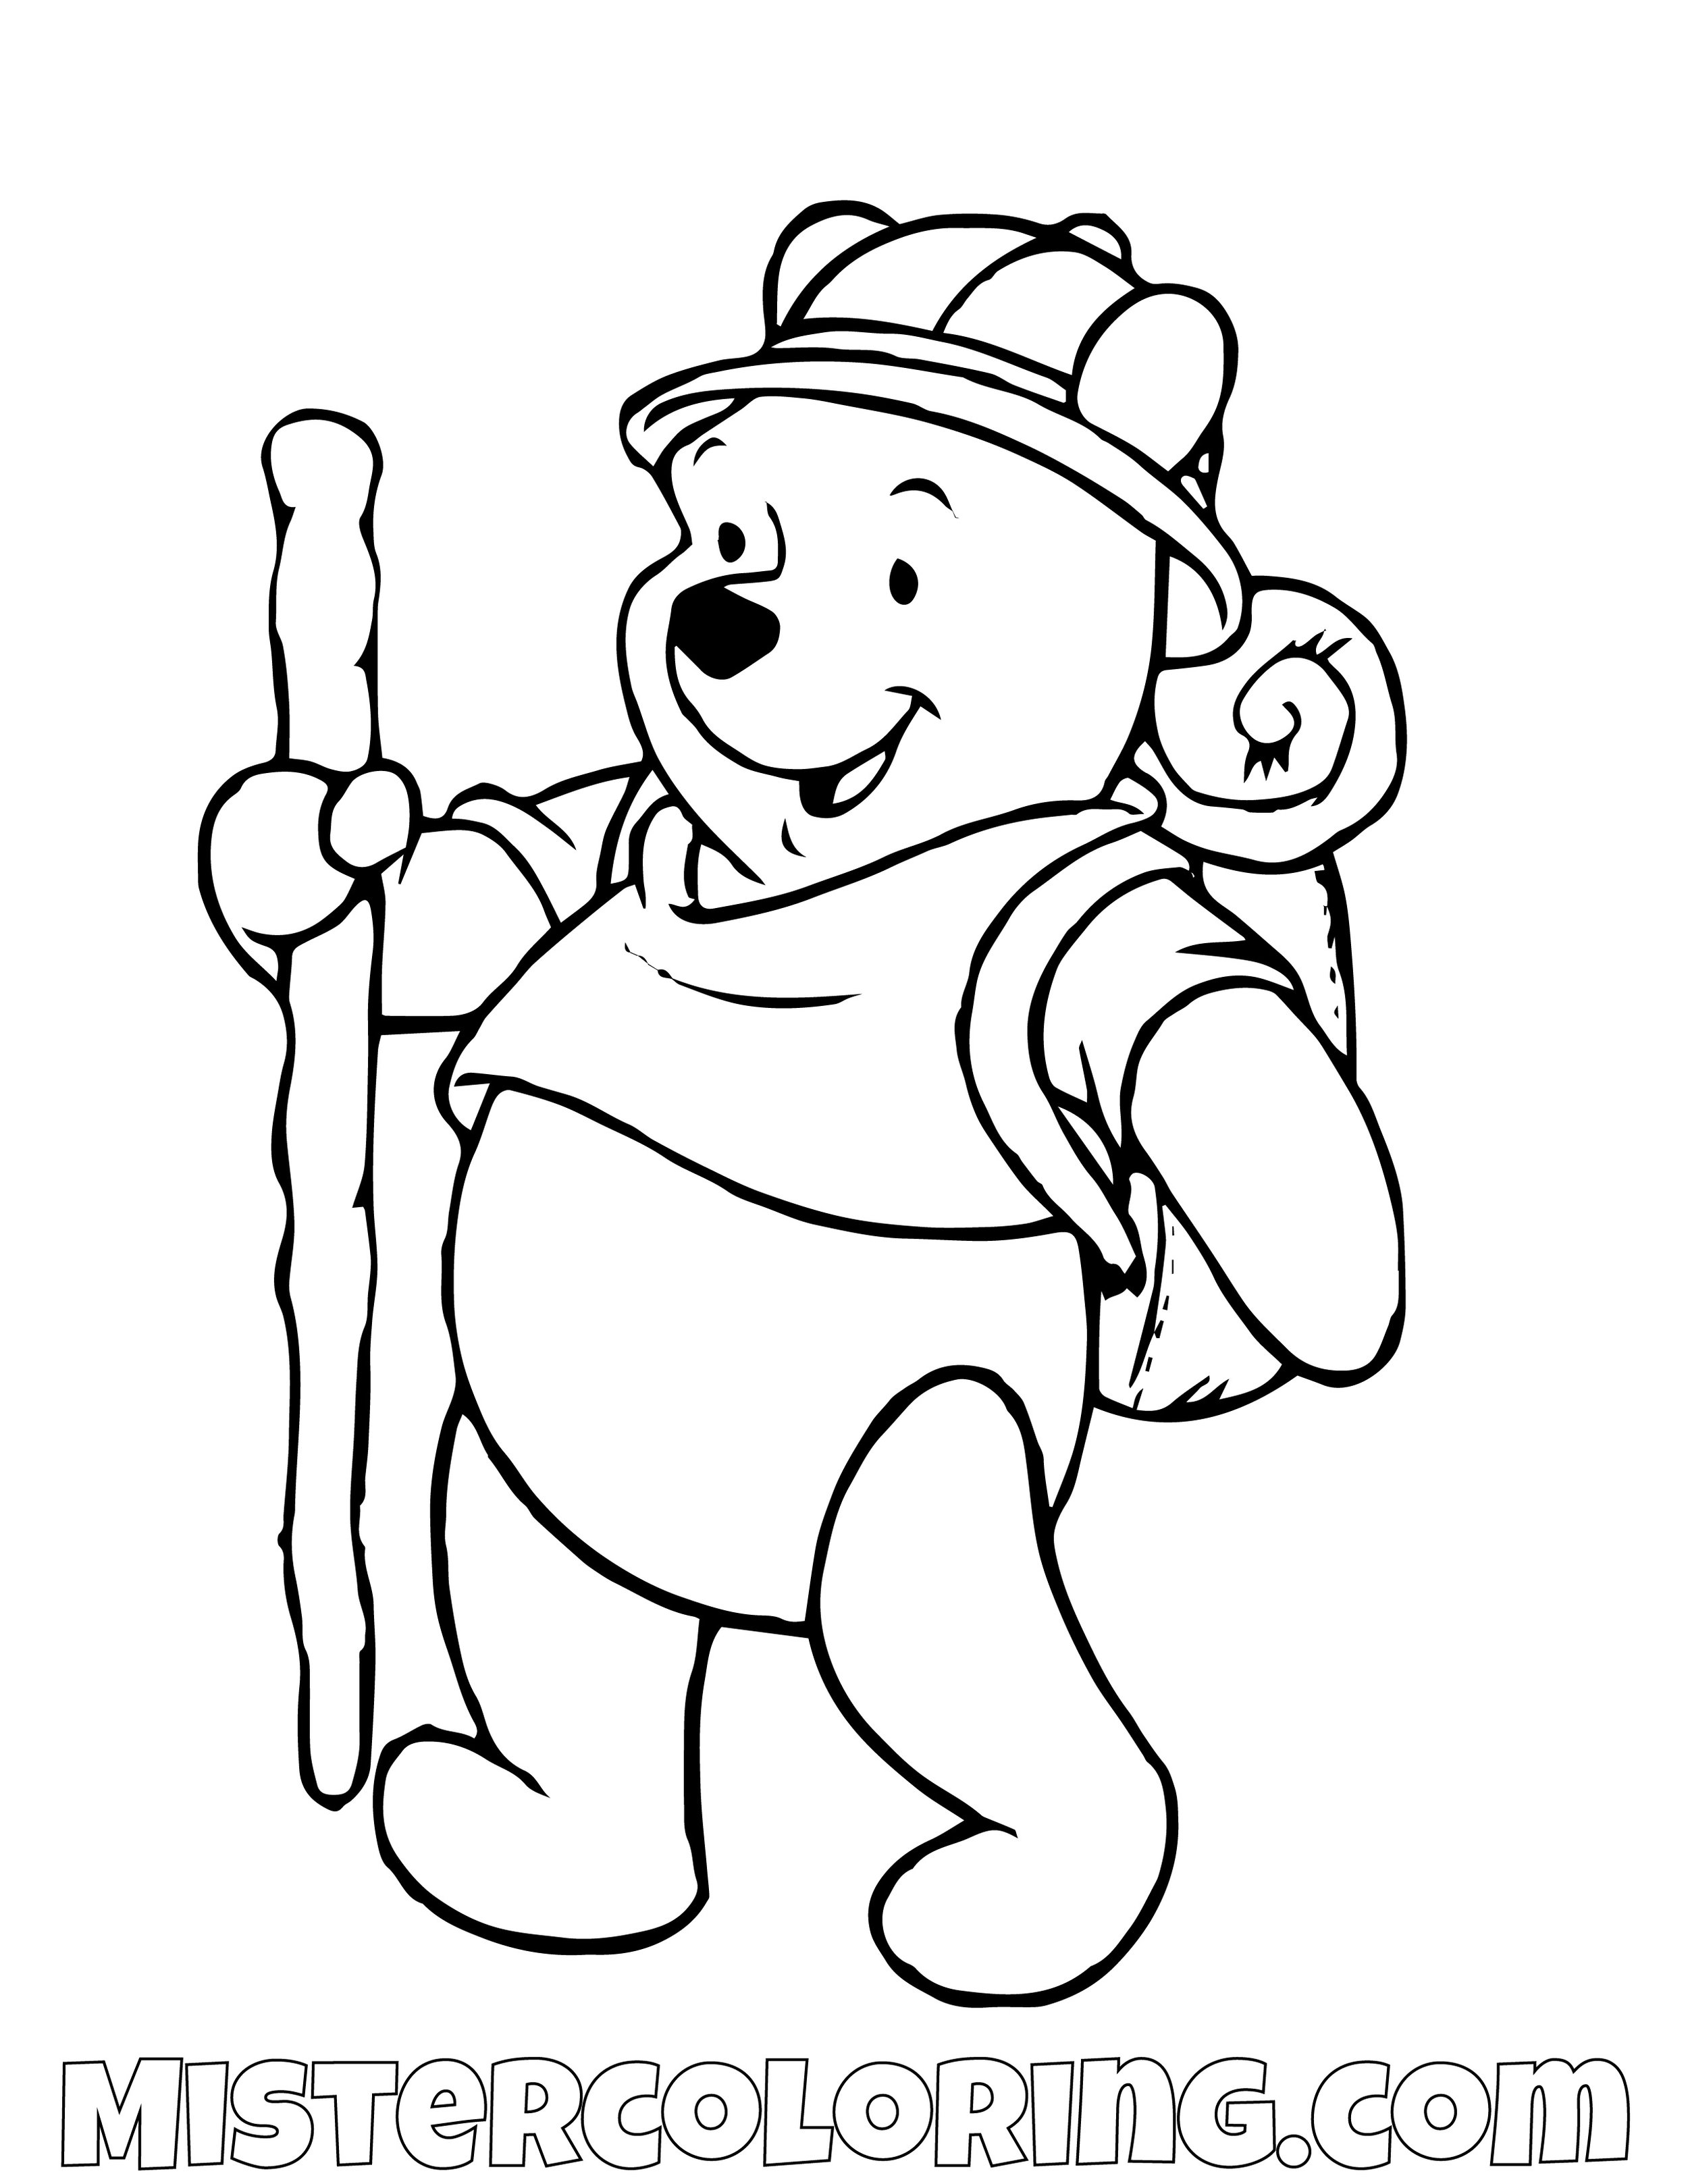 Winnie The Pooh Hiking Coloring Page